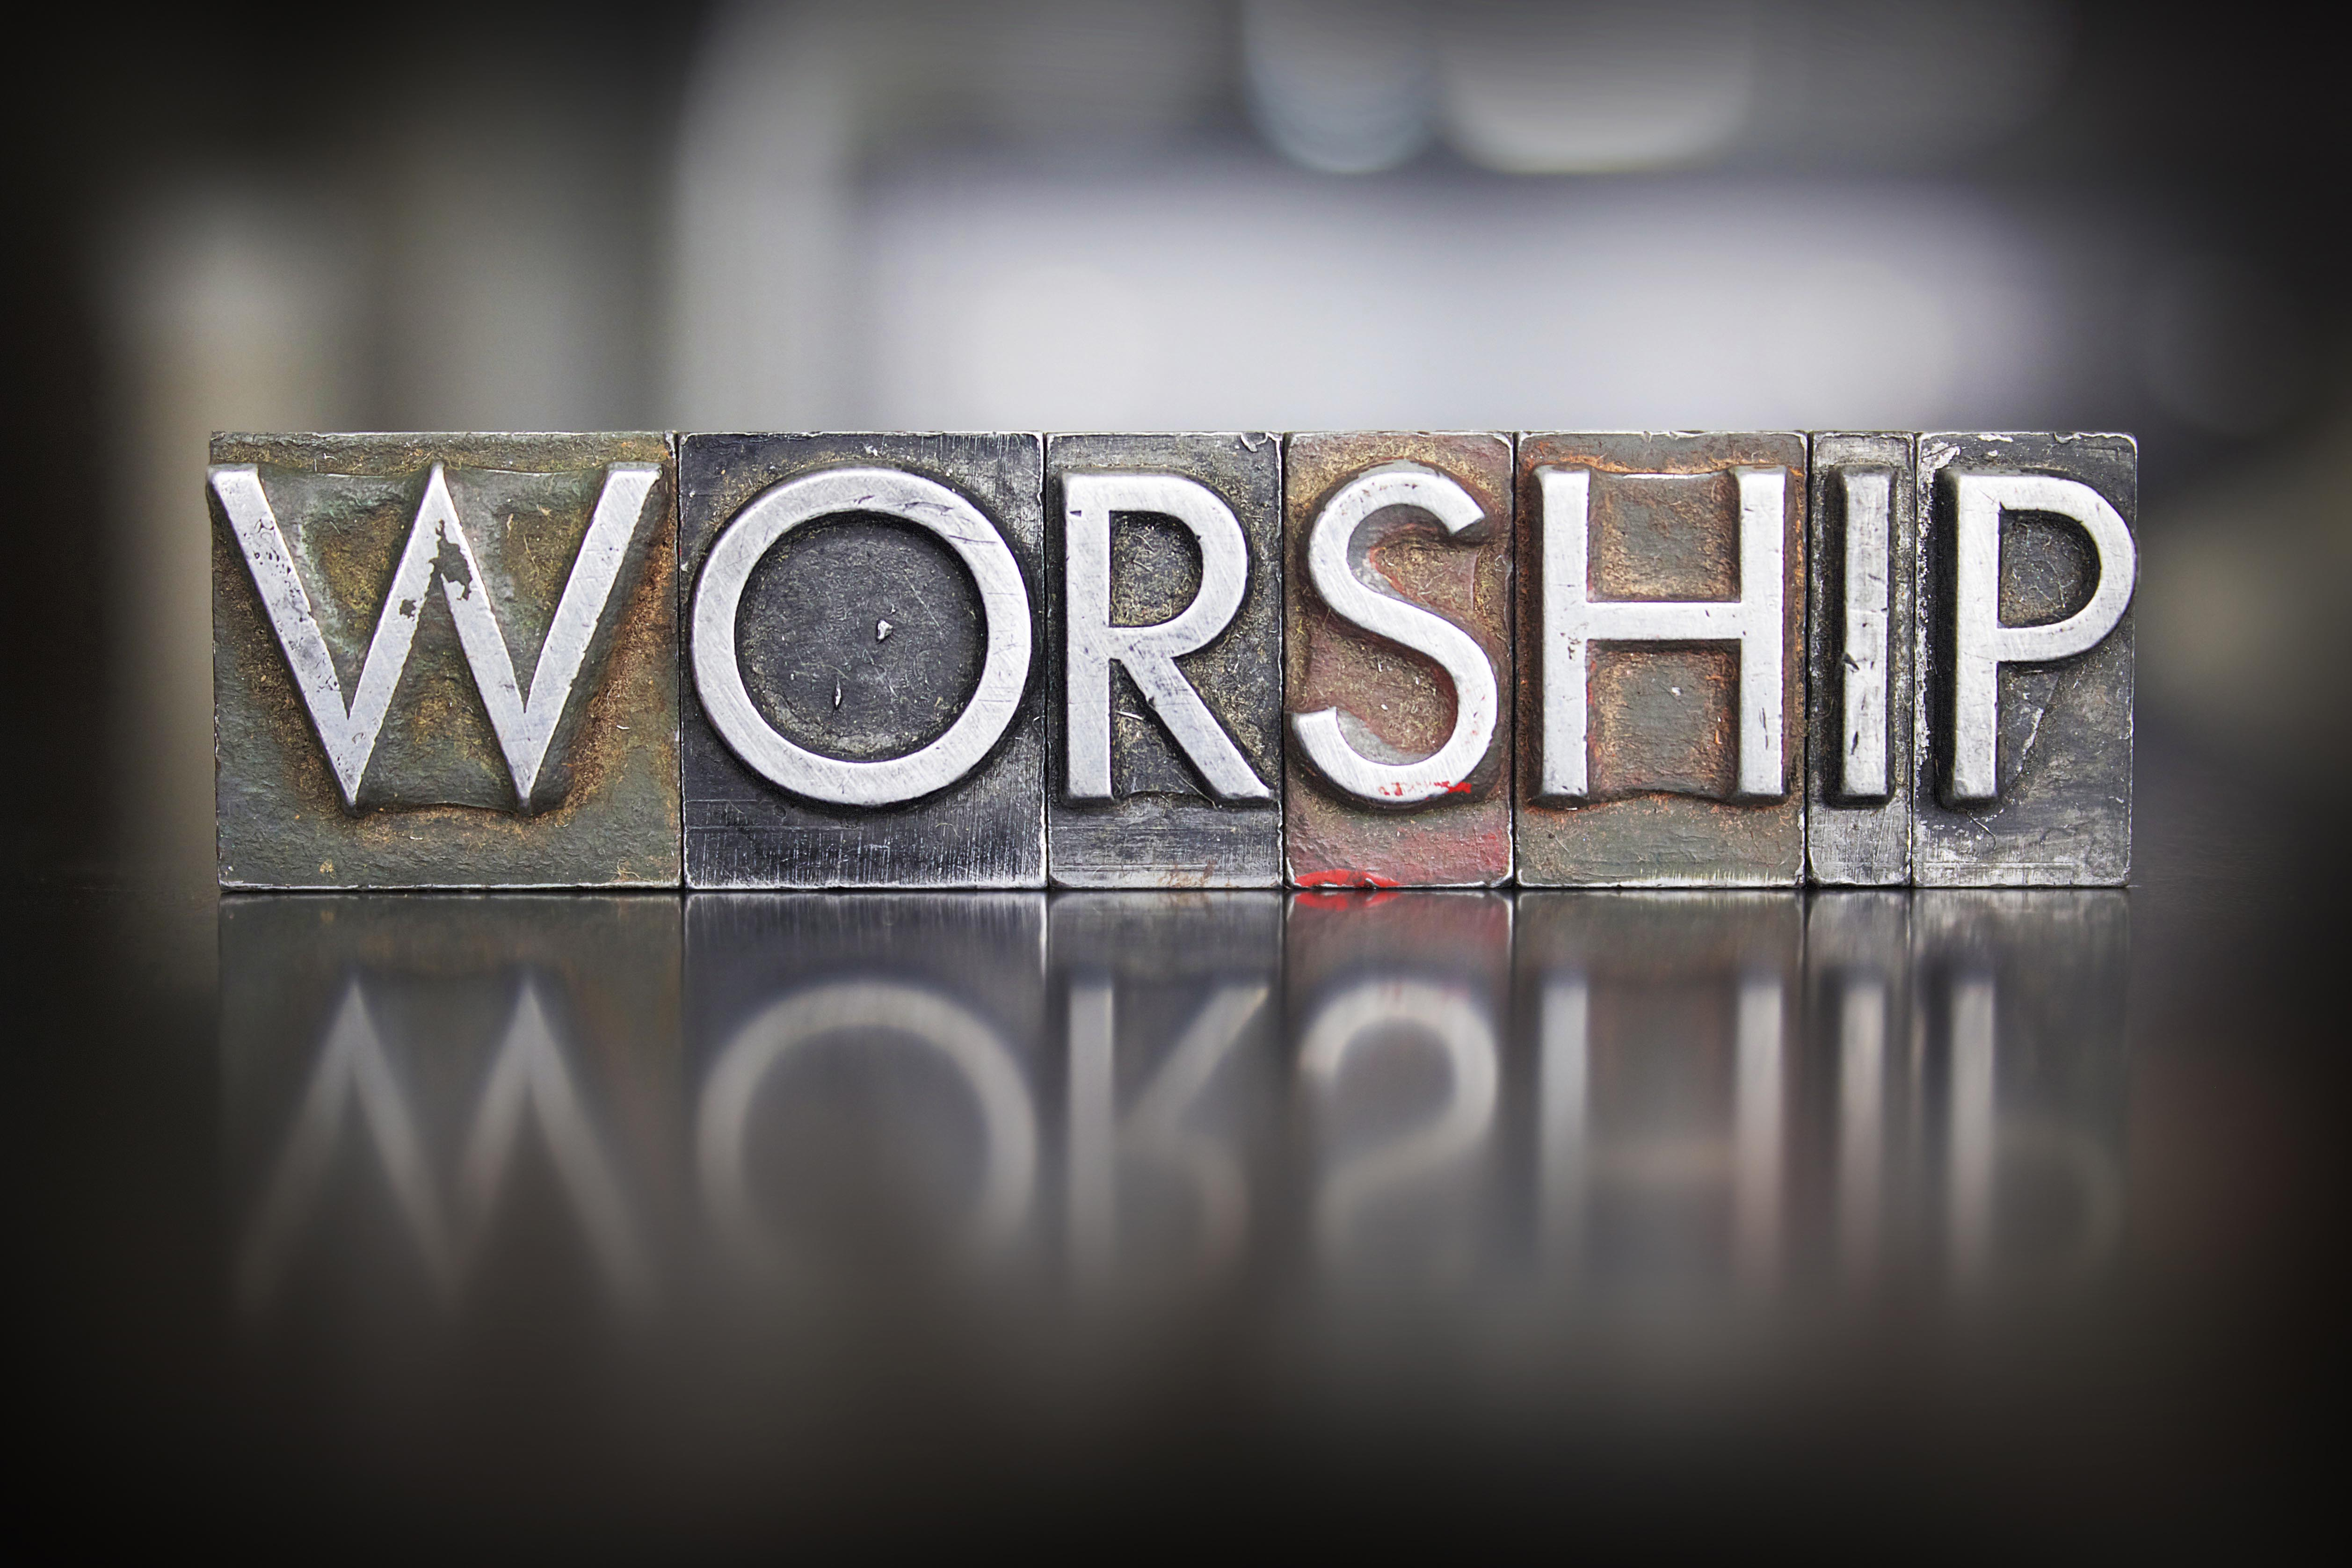 I. WHAT TRUE WORSHIP IS NOT